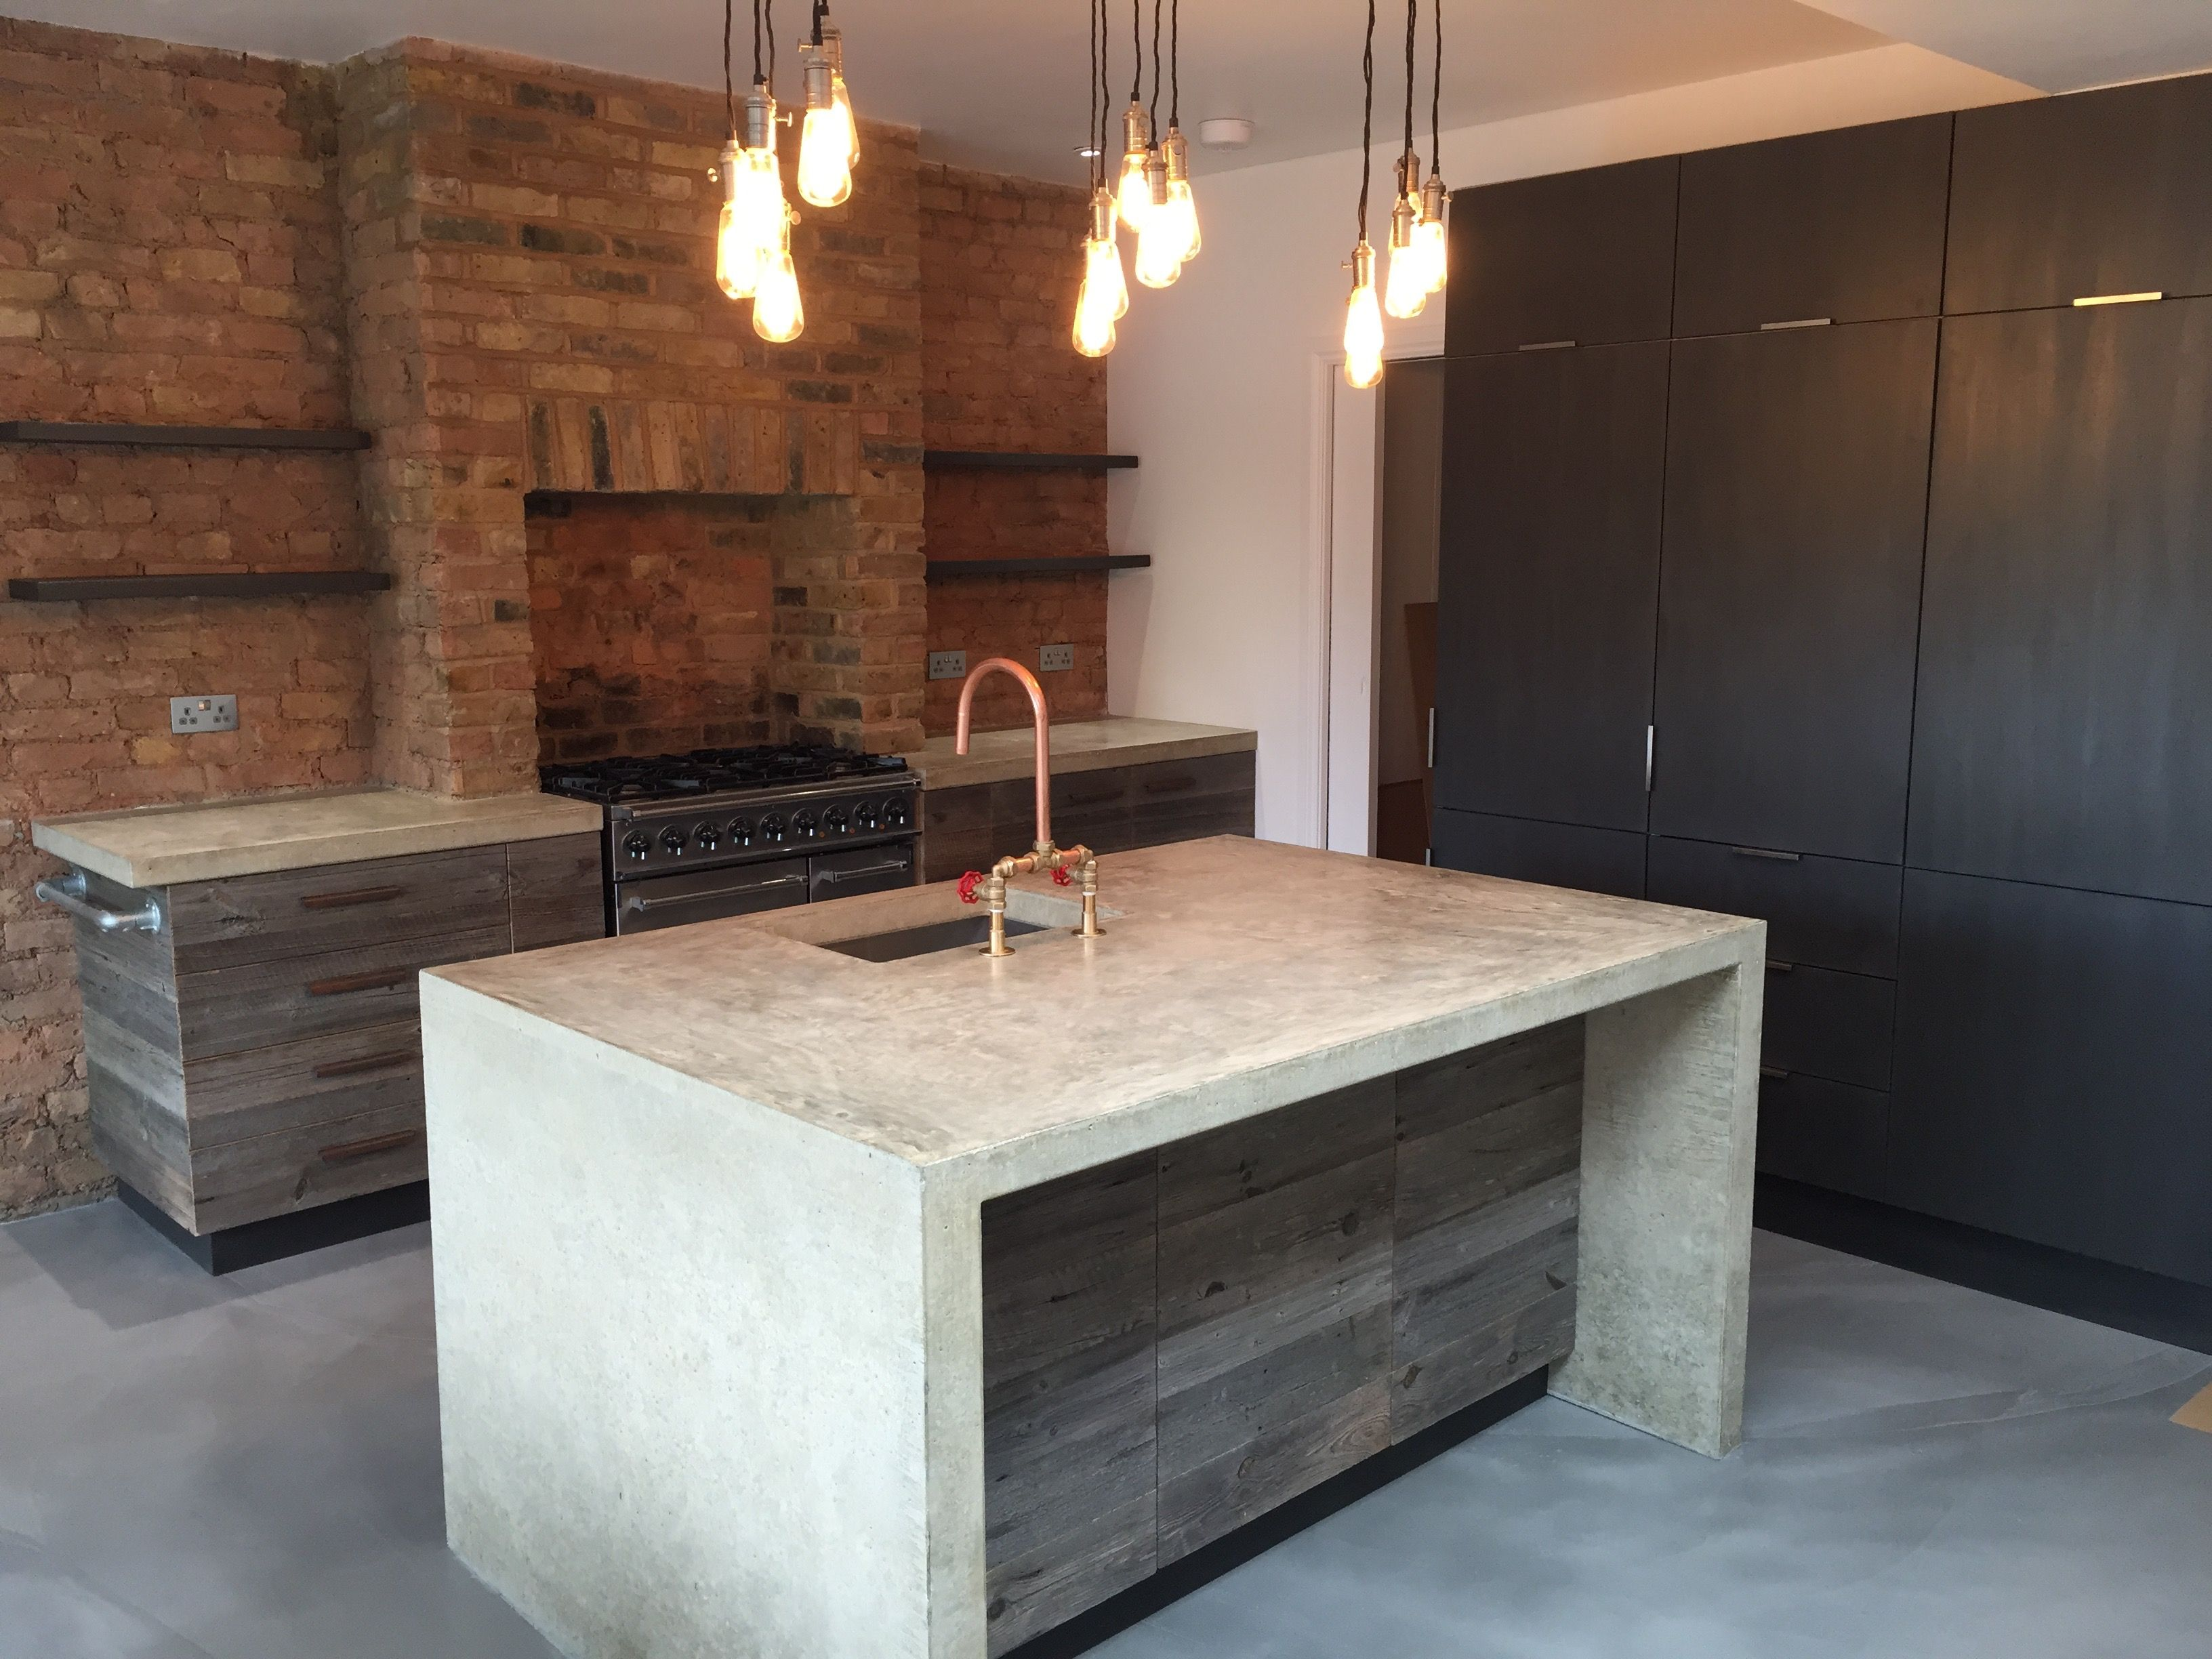 London Kitchen Project With Cast In Situ Polished Concrete Island,  Reclaimed Timber Cabinets,